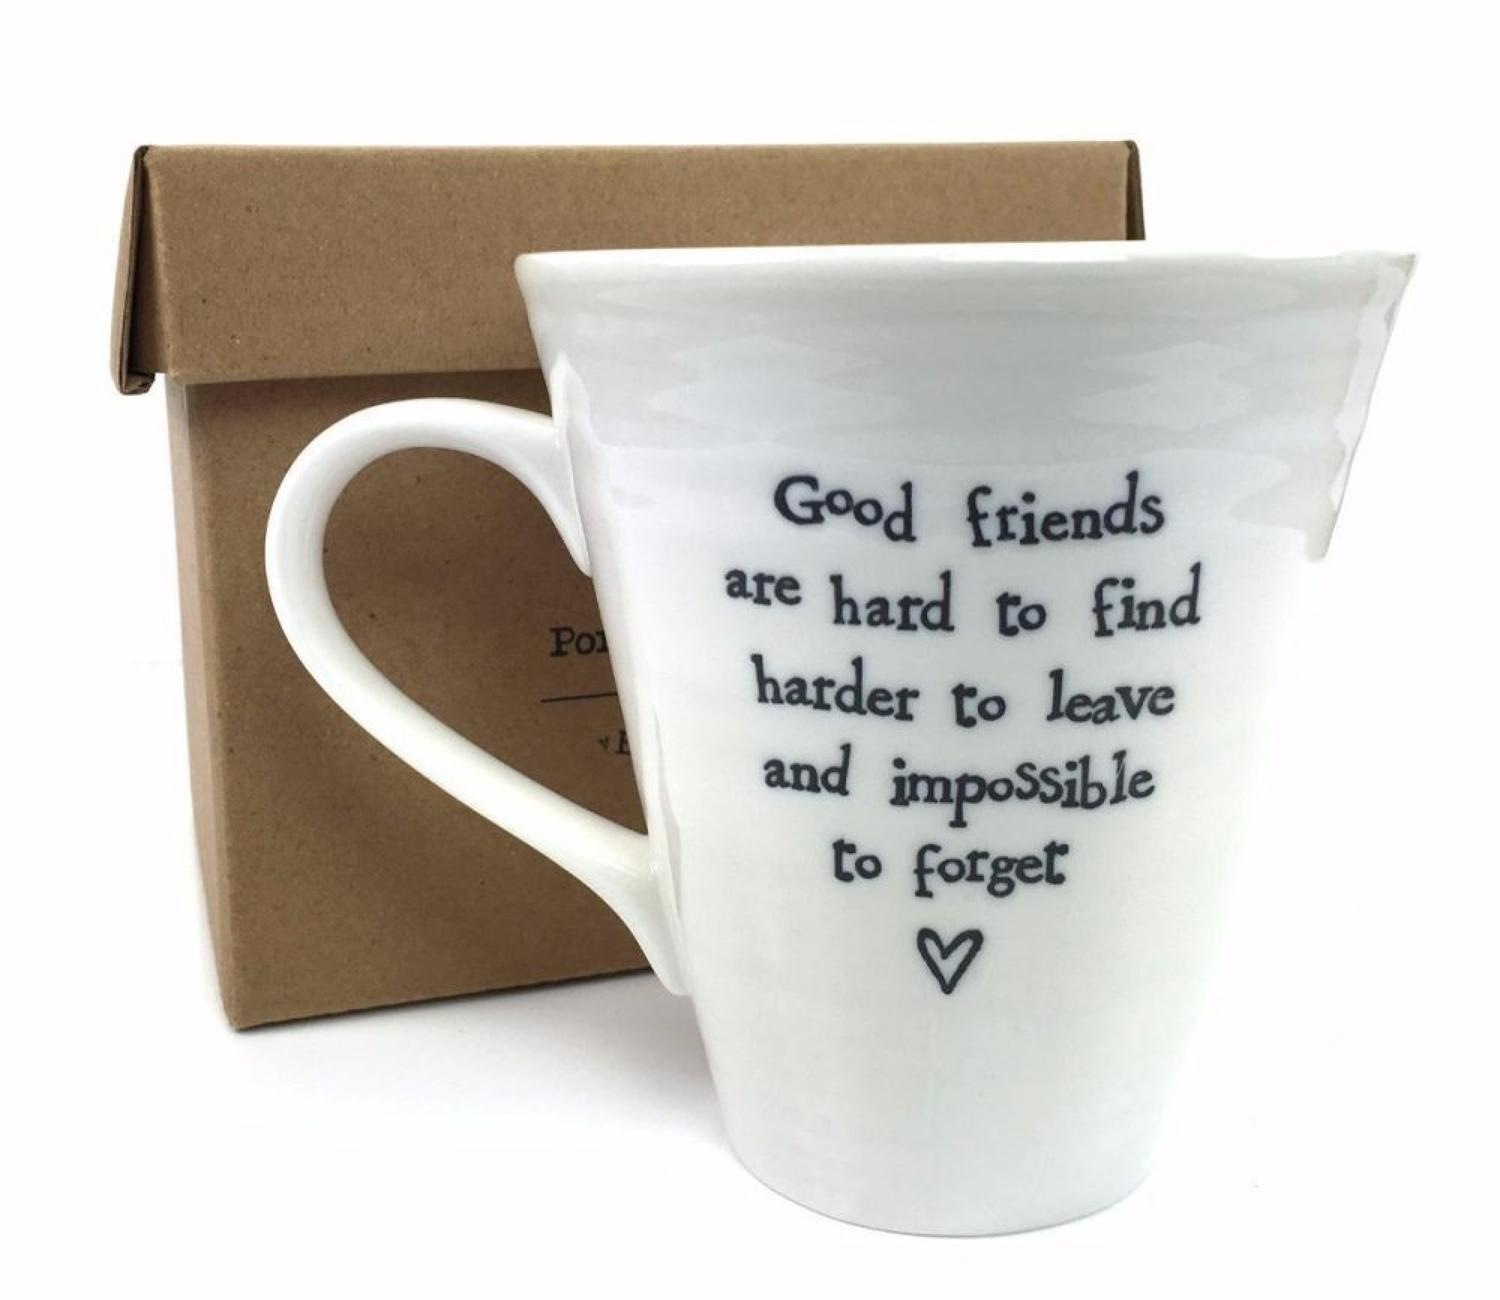 East of India - Boxed porcelain mug - Good friends are hard to find